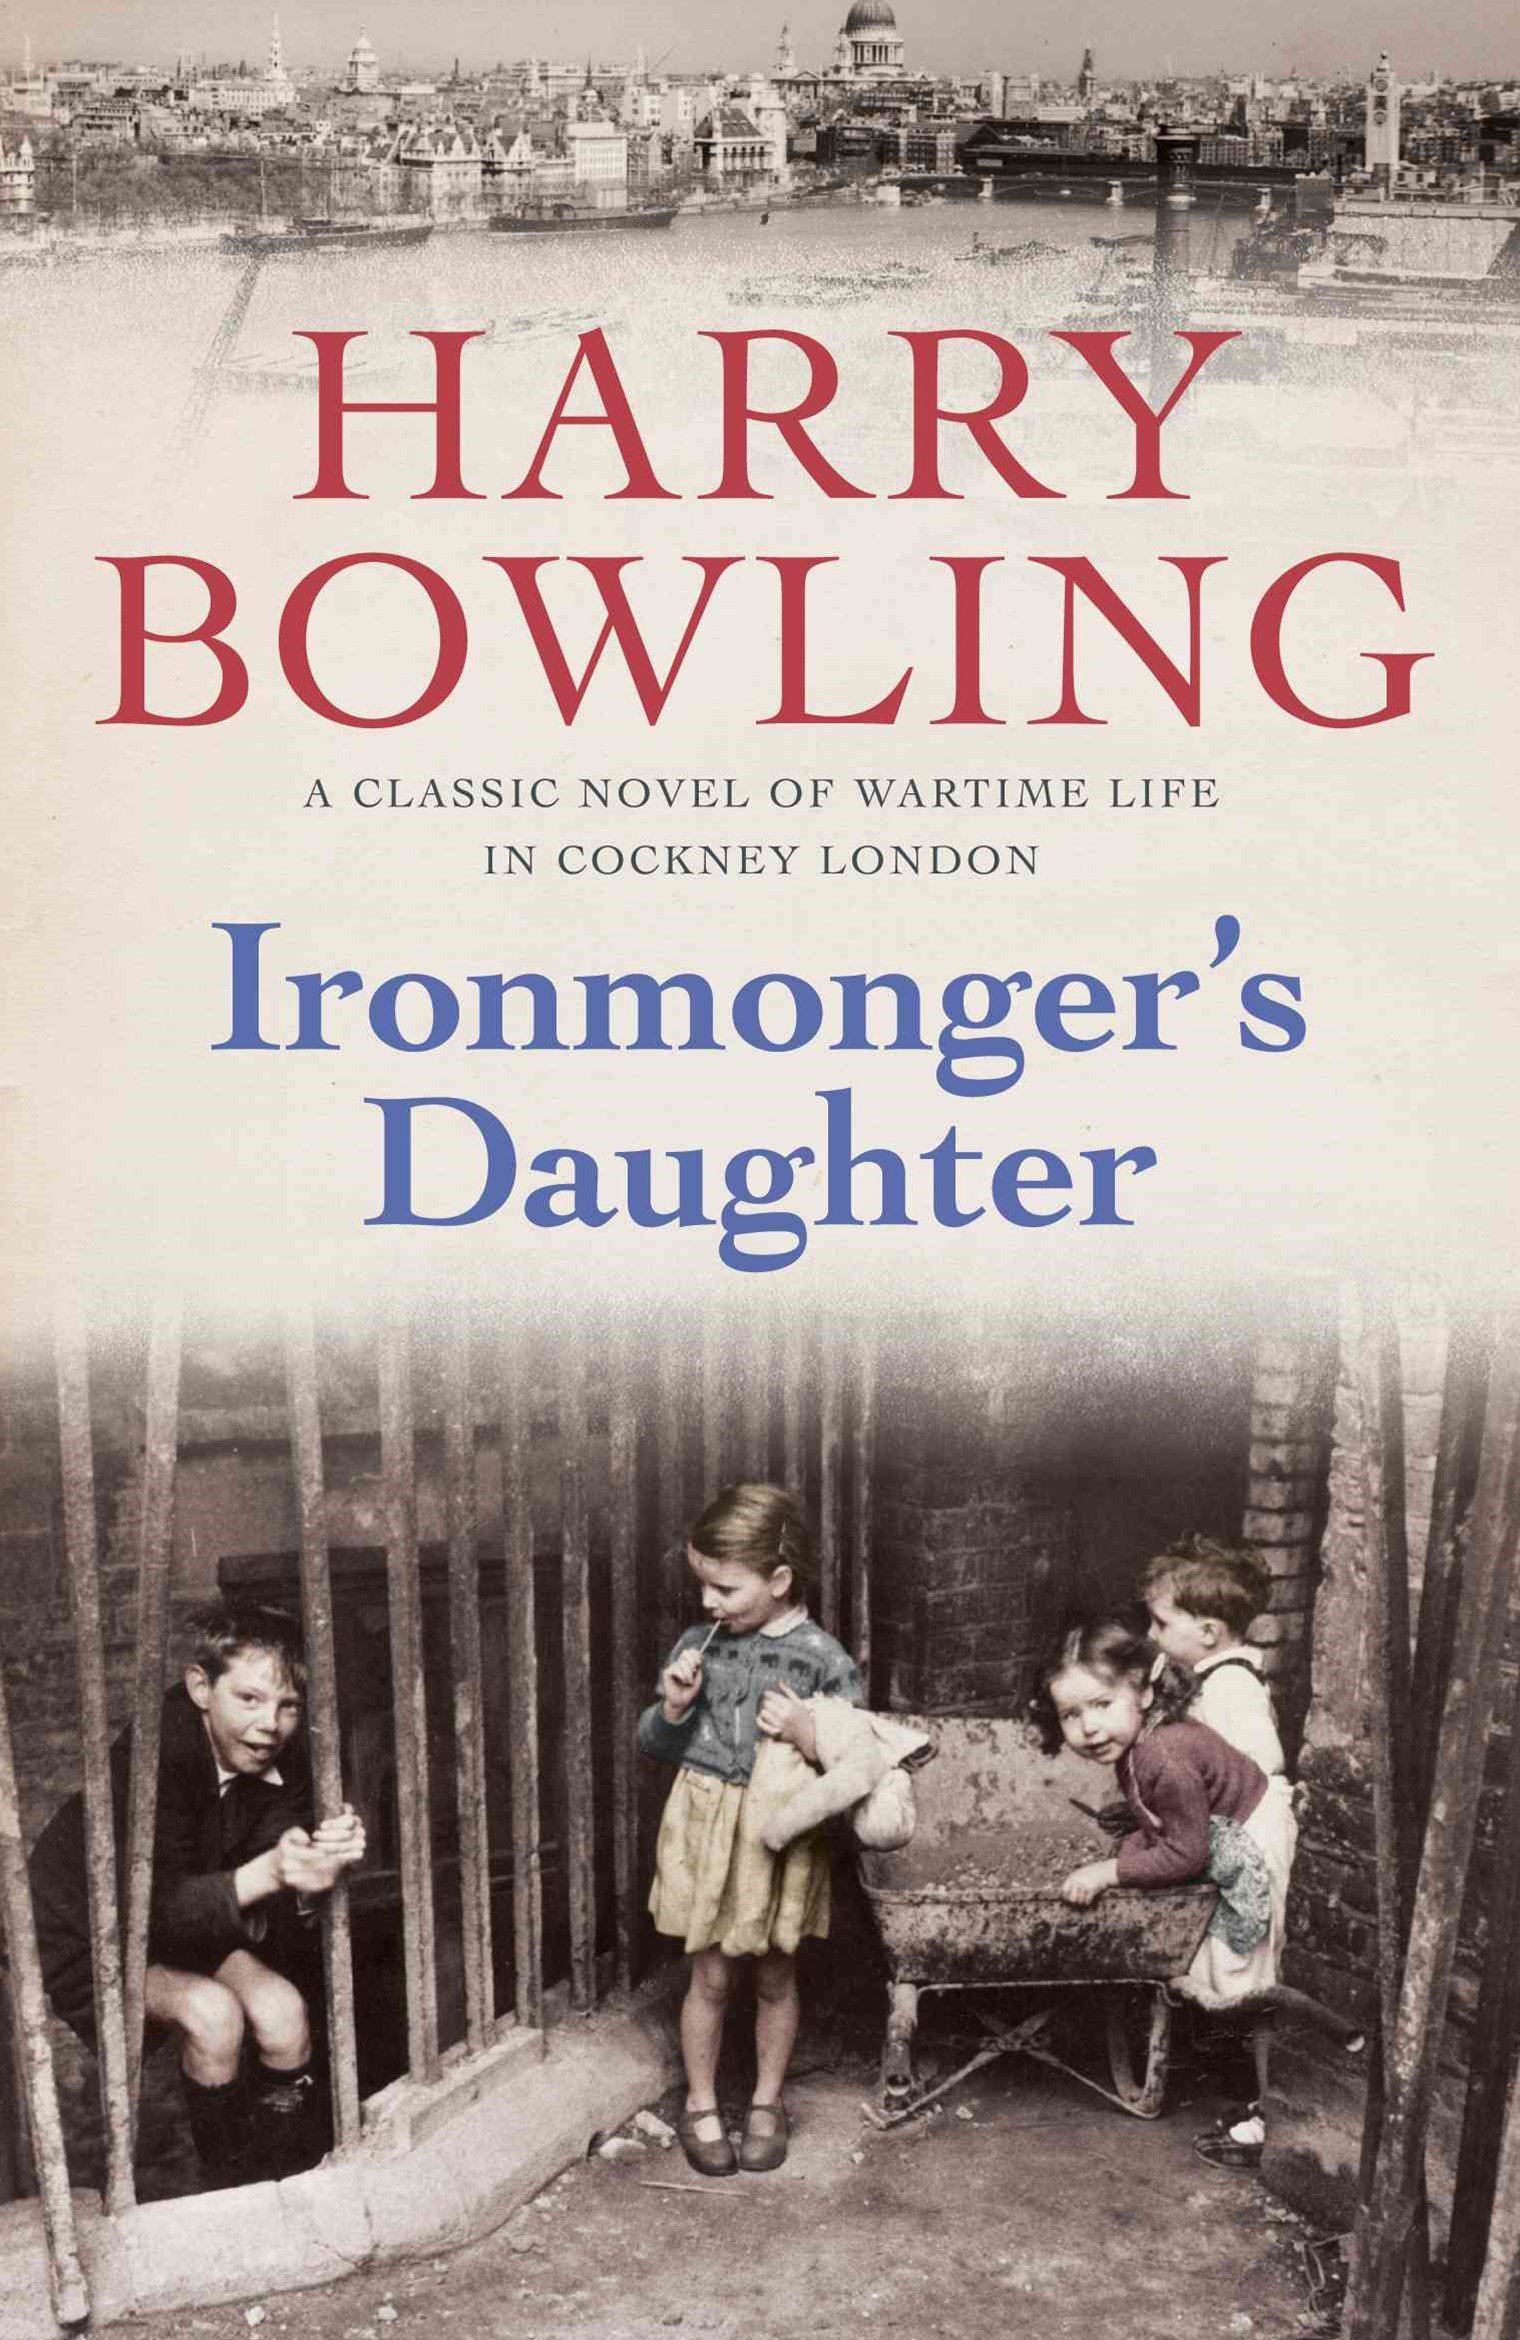 Ironmonger's Daughter